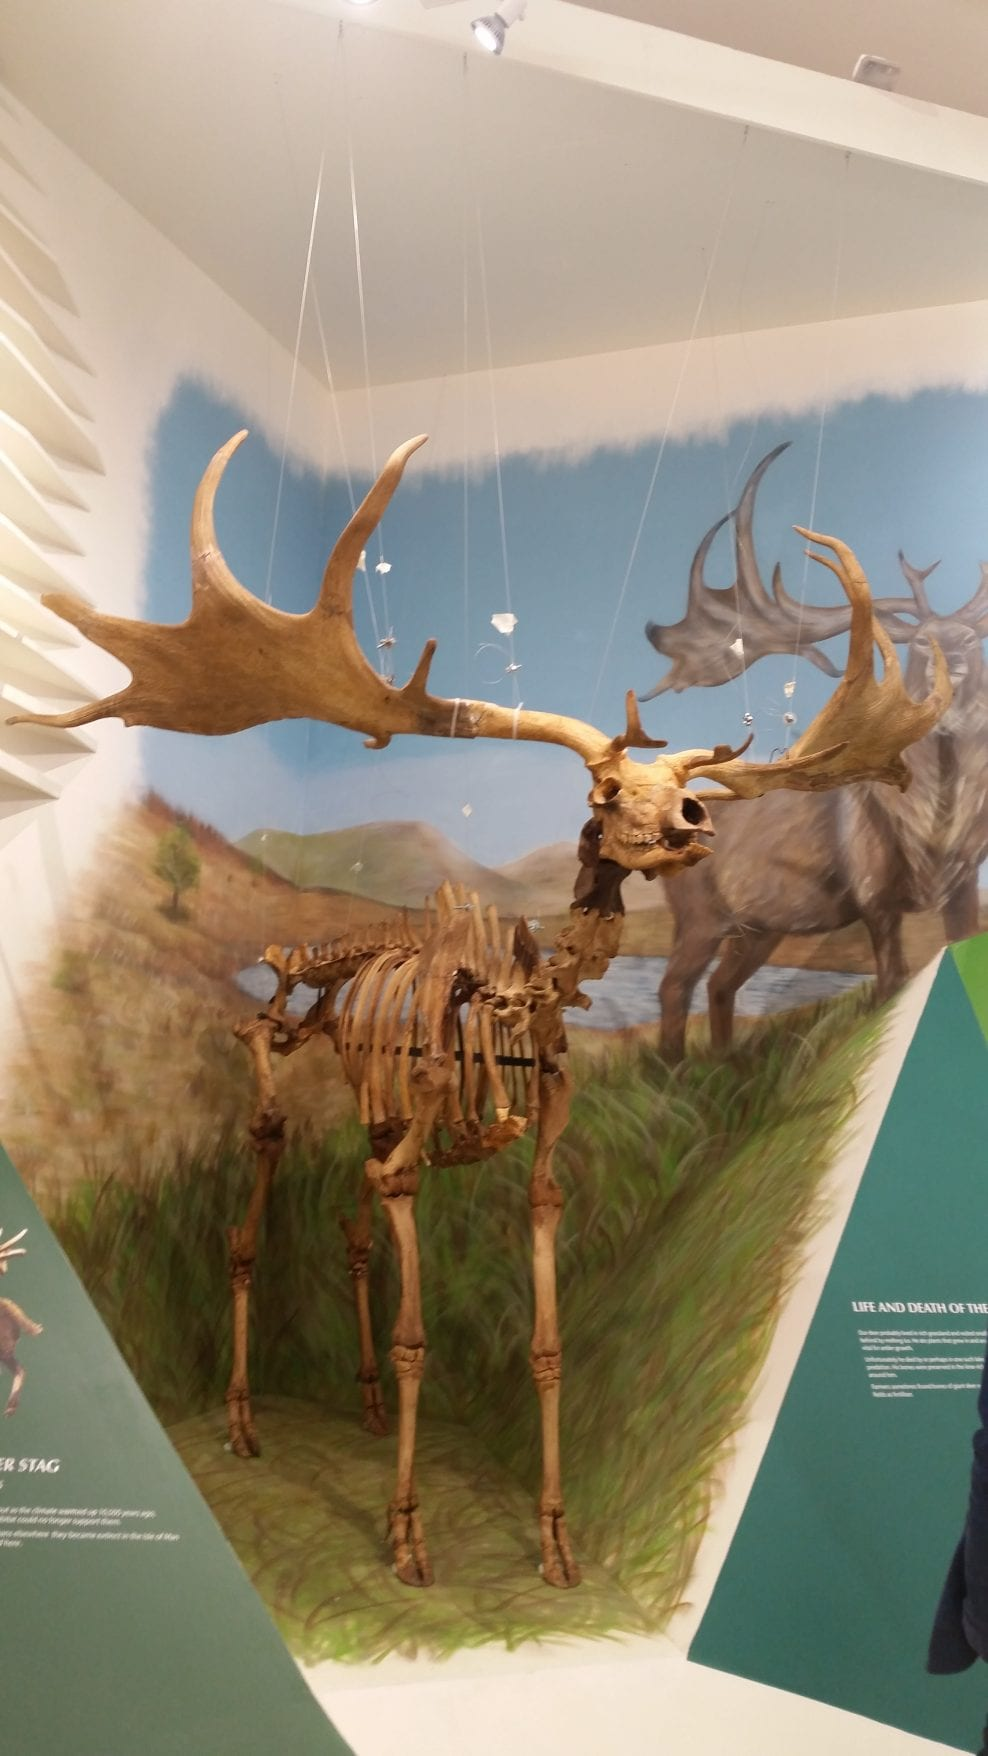 Manx Giant Deer after conservation and installation